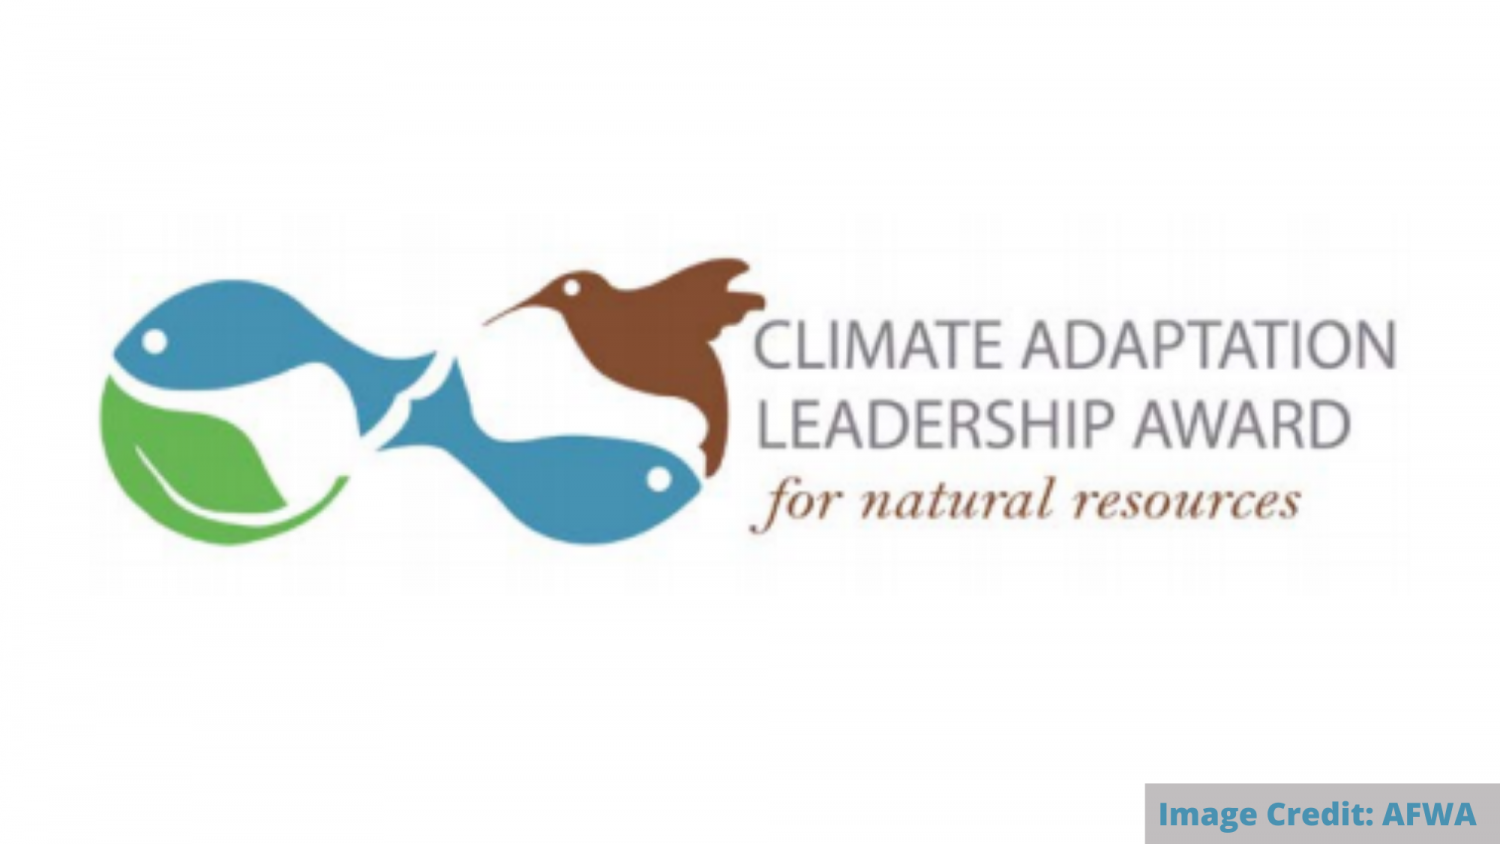 Climate Adaptation Leadership Awards logo